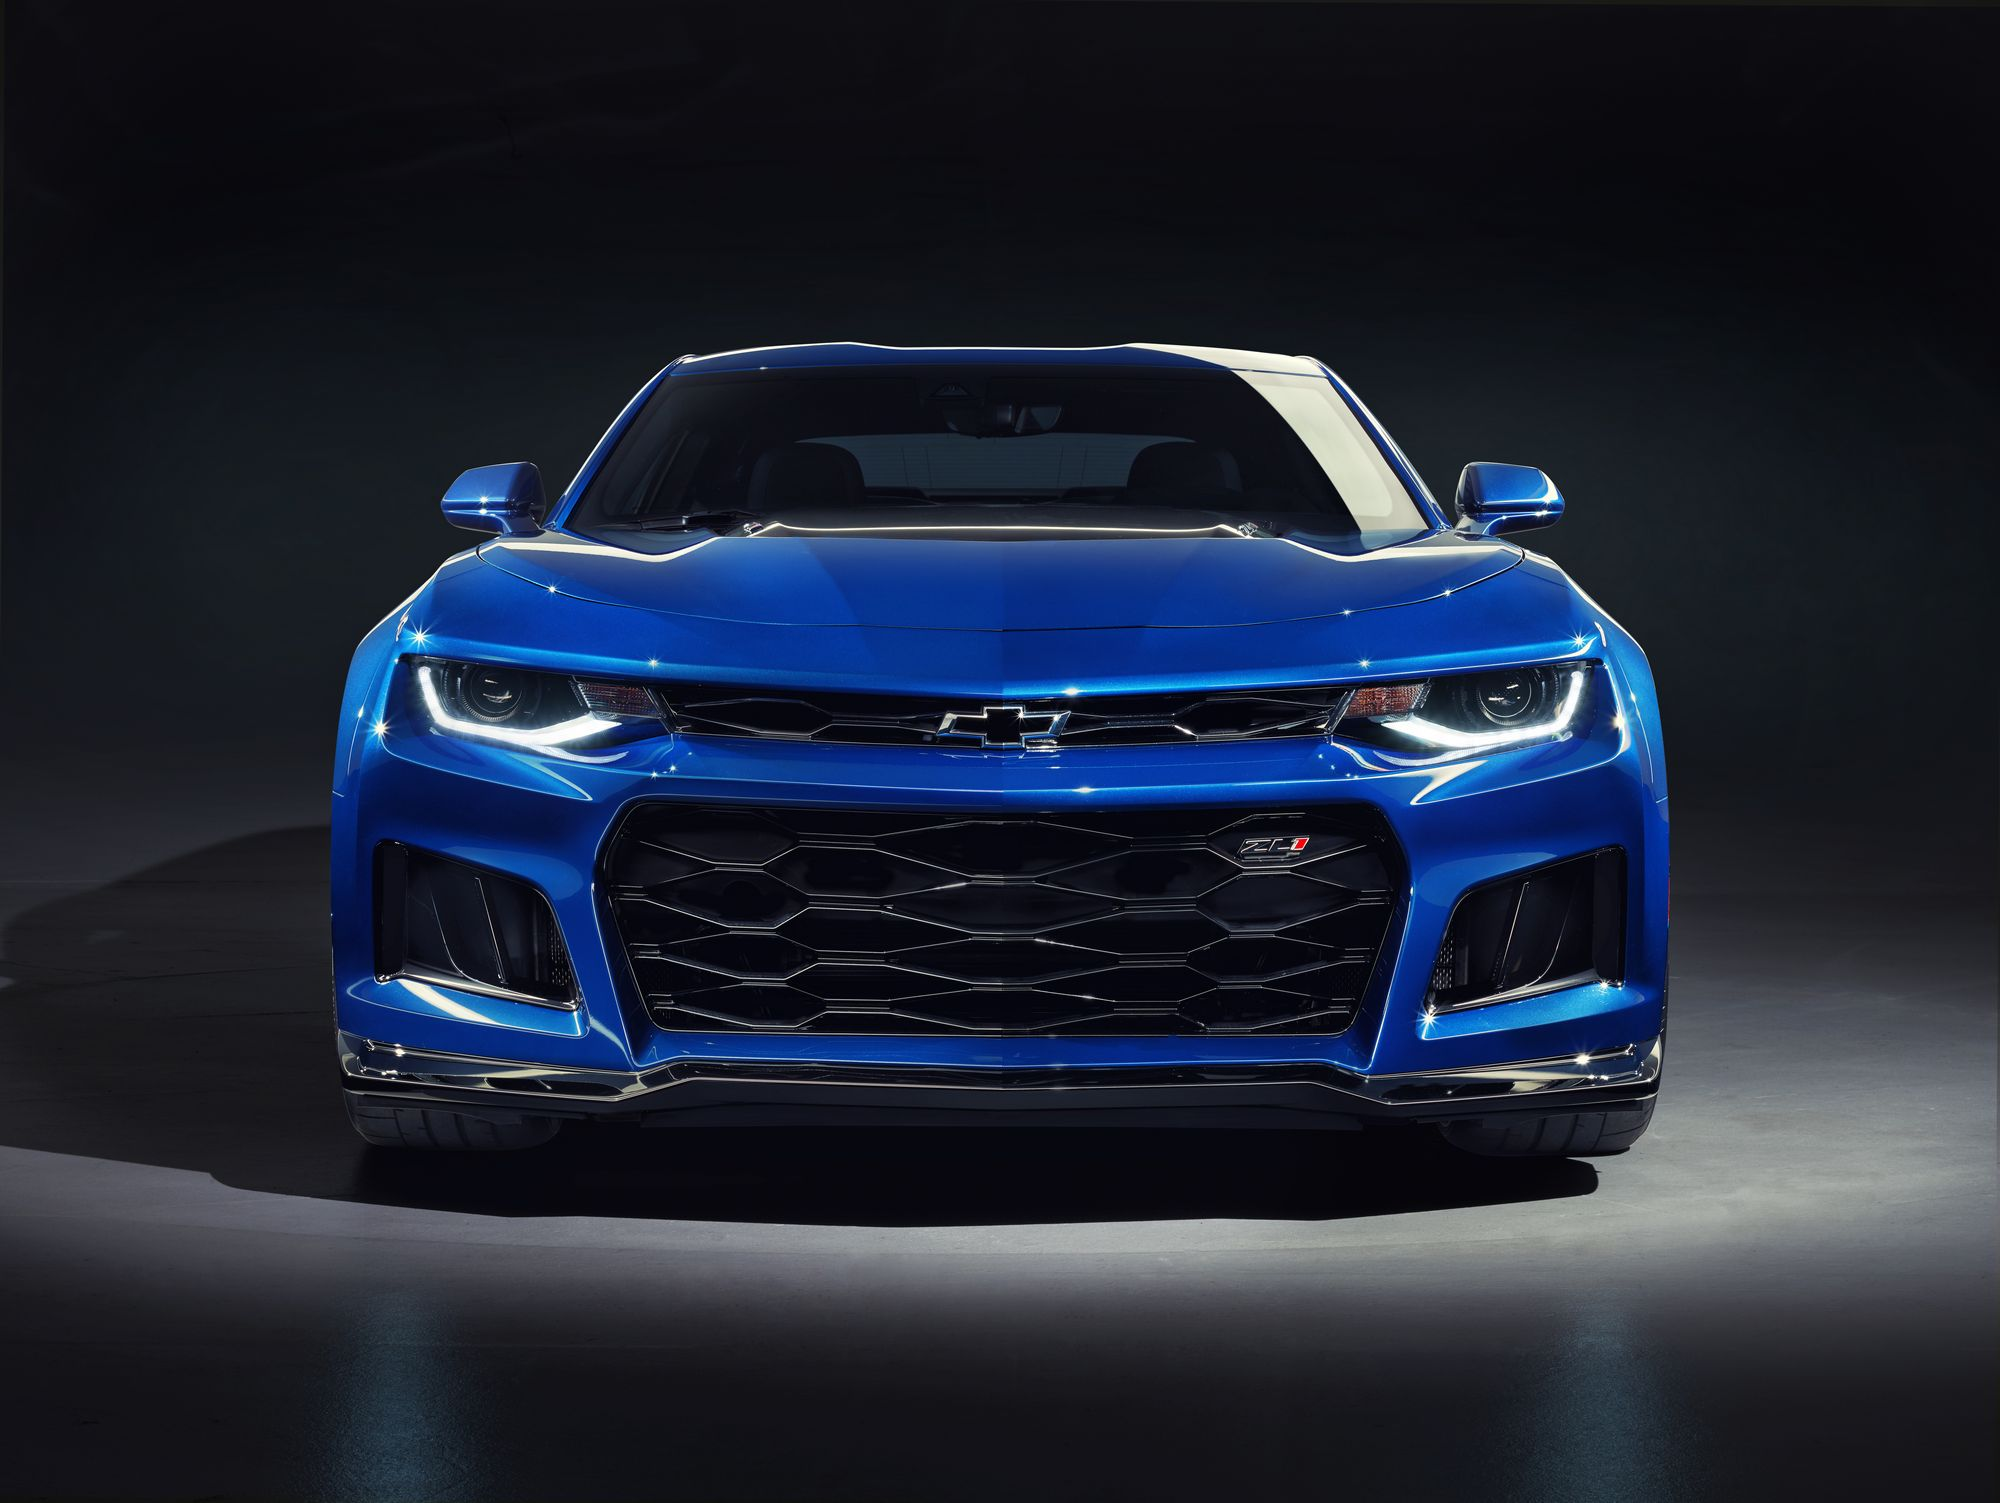 2019 Camaro Zl1 2ss Now Available In Australia With Rhd